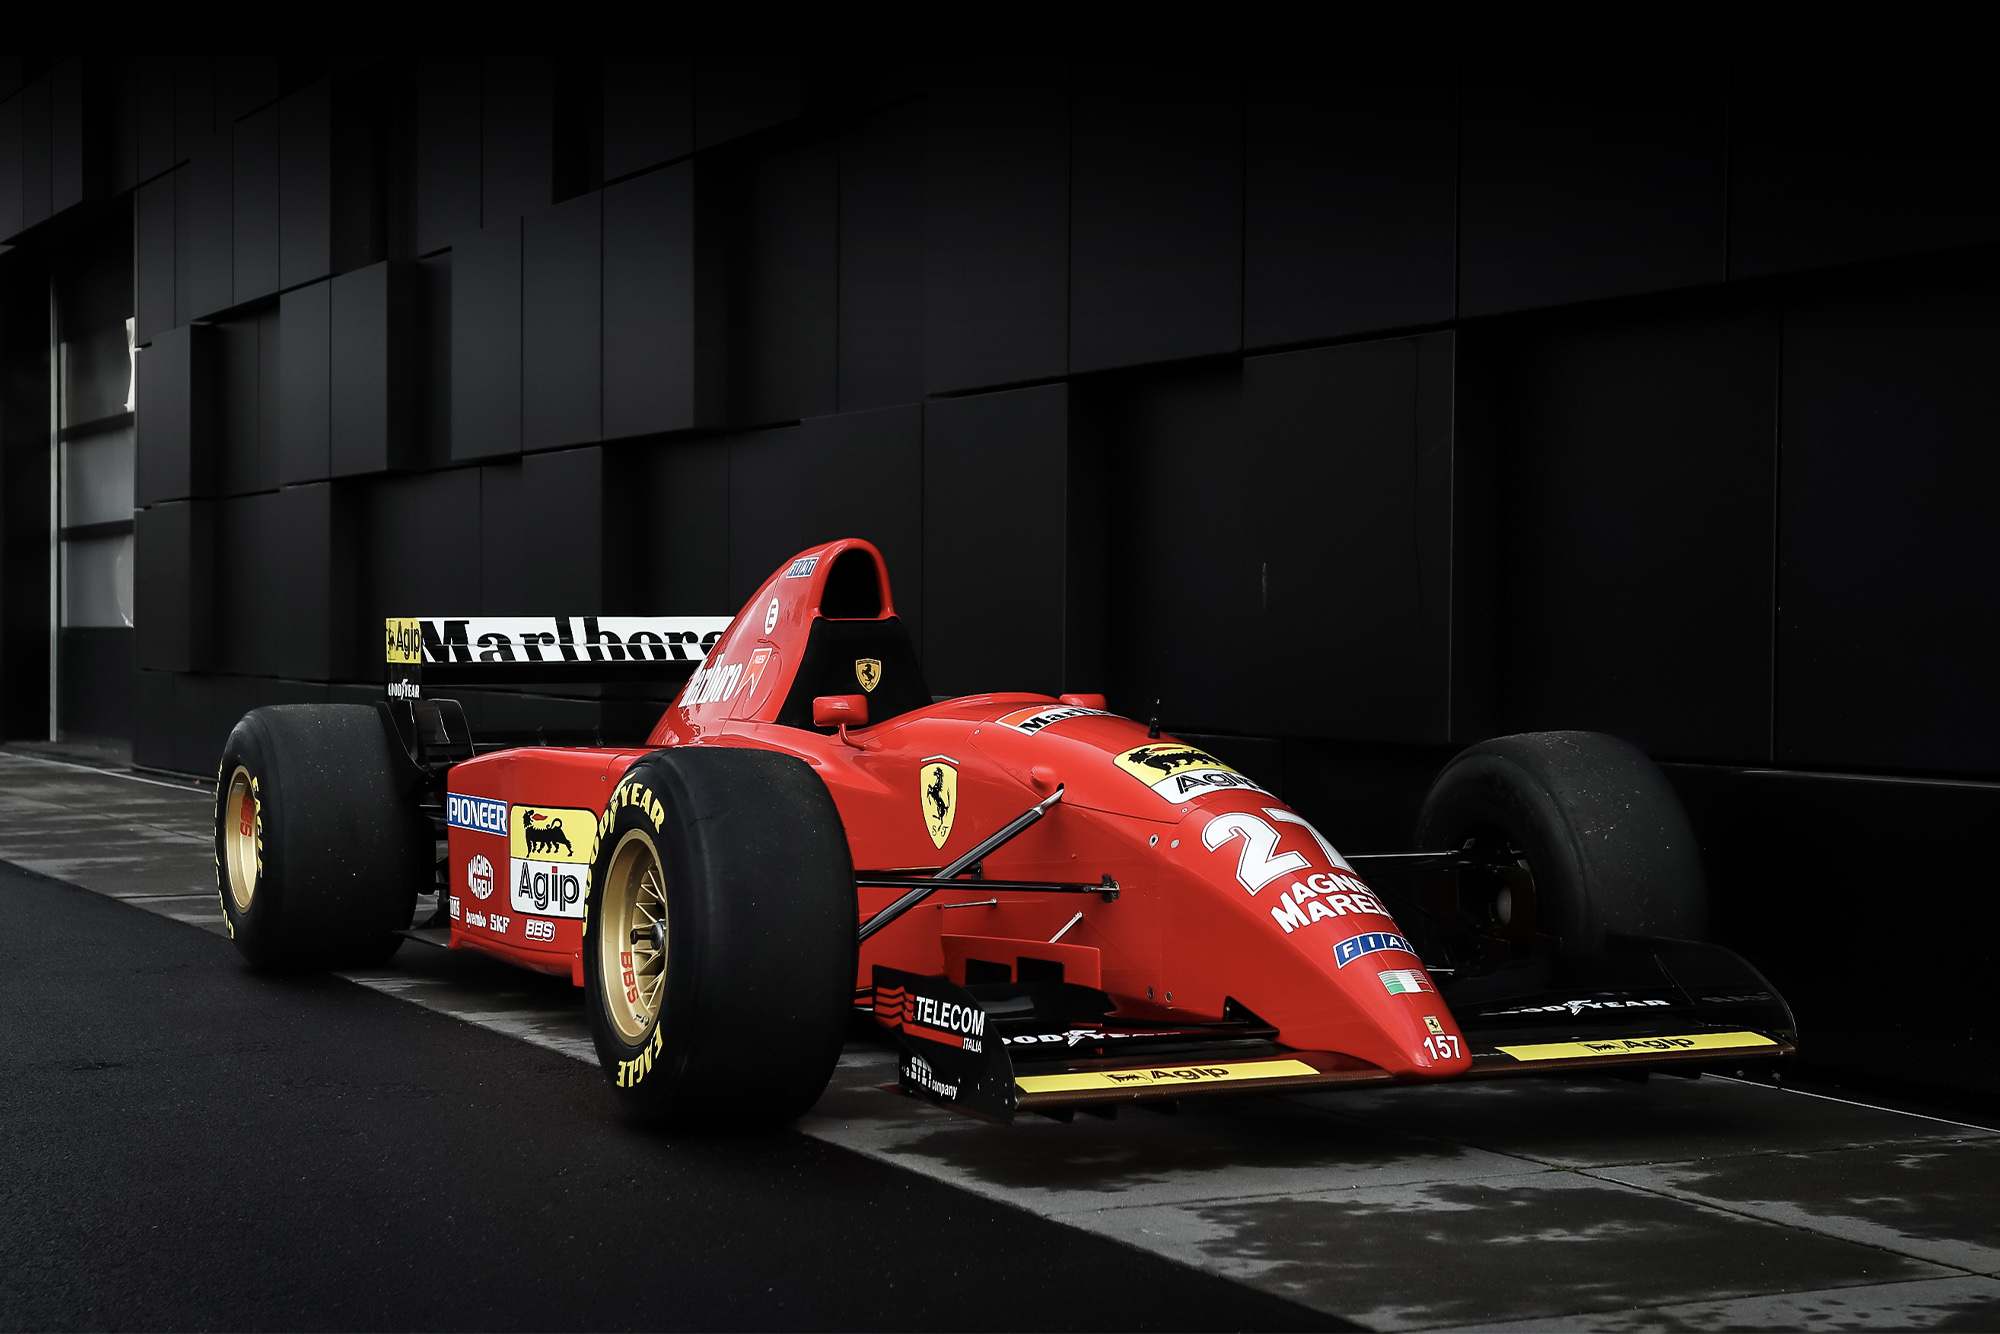 Michael Schumacher's first Ferrari F1 car to be sold